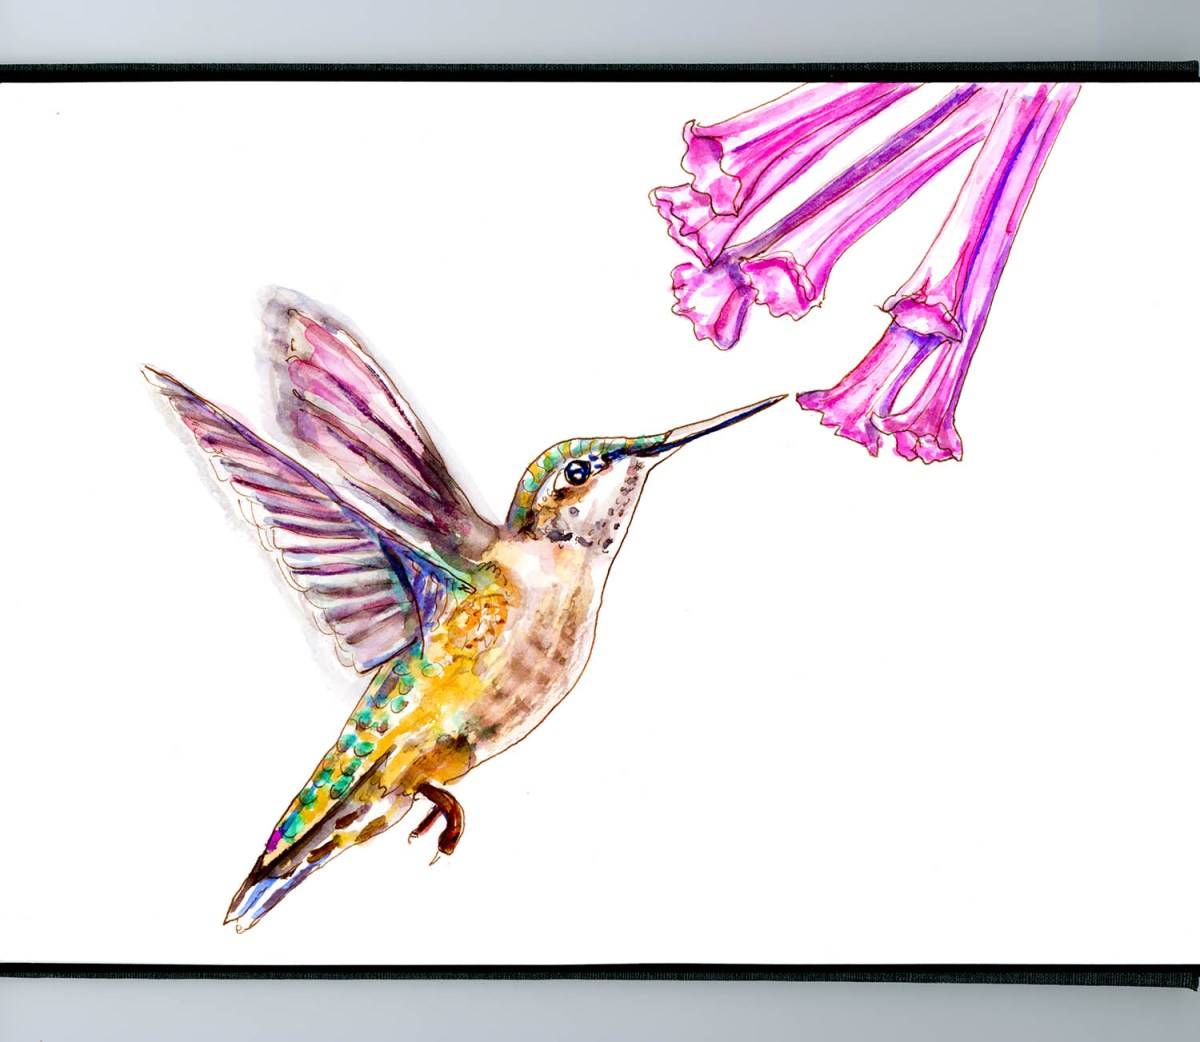 #WorldWatercolorGroup - Day 6 - Like A Hummingbird - Doodlewash